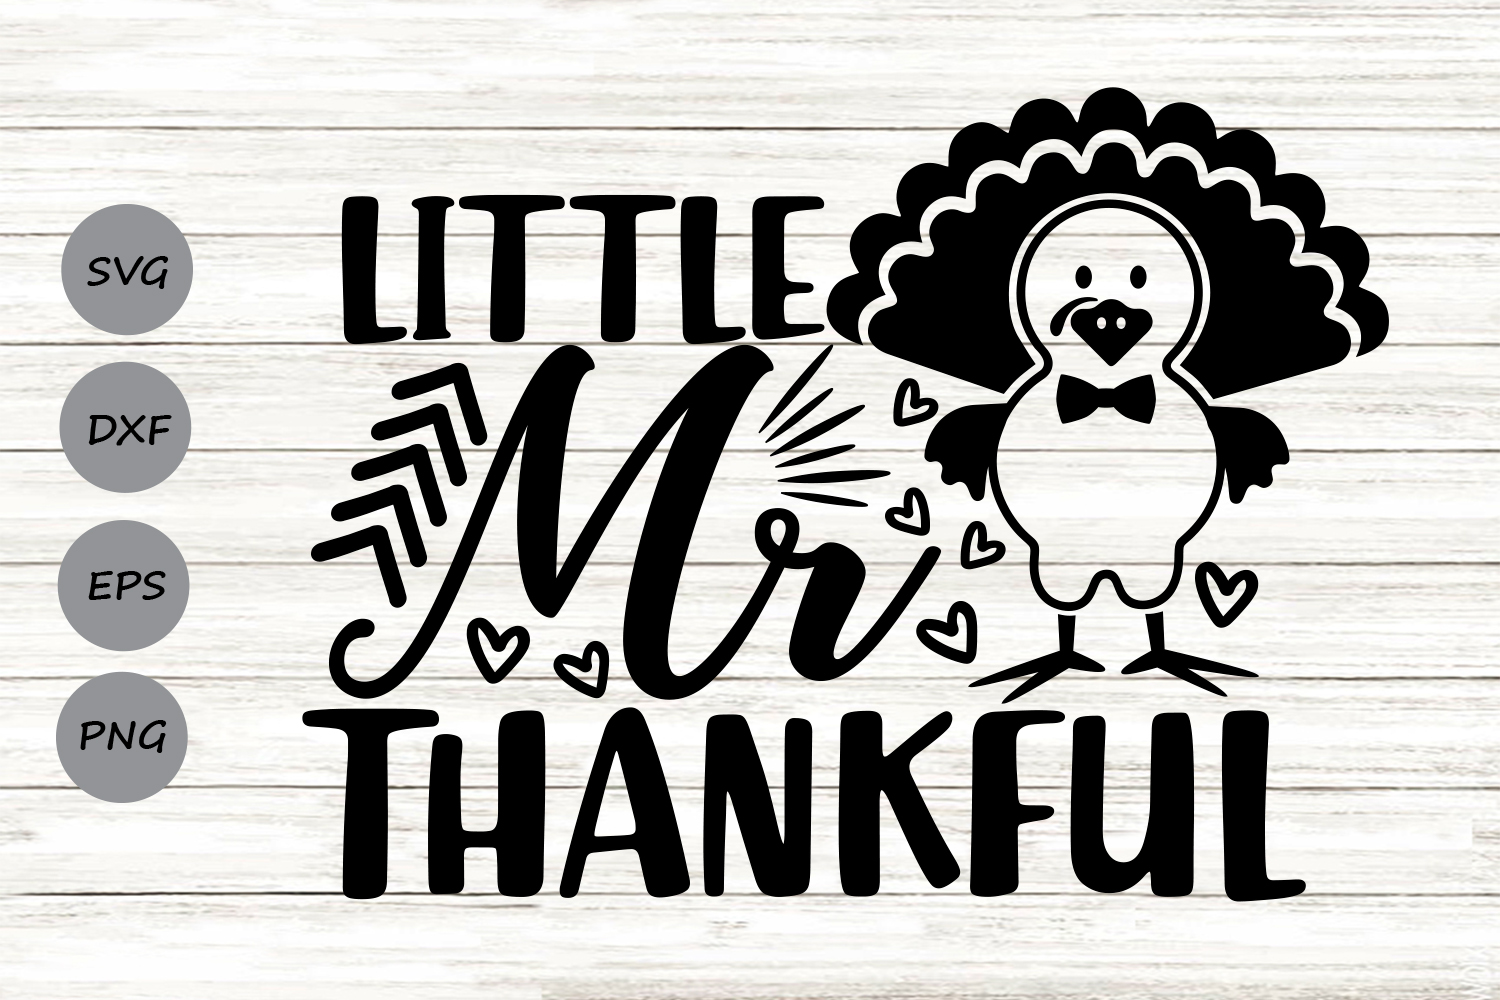 Download Free Little Mr Thankful Svg Graphic By Cosmosfineart Creative Fabrica for Cricut Explore, Silhouette and other cutting machines.